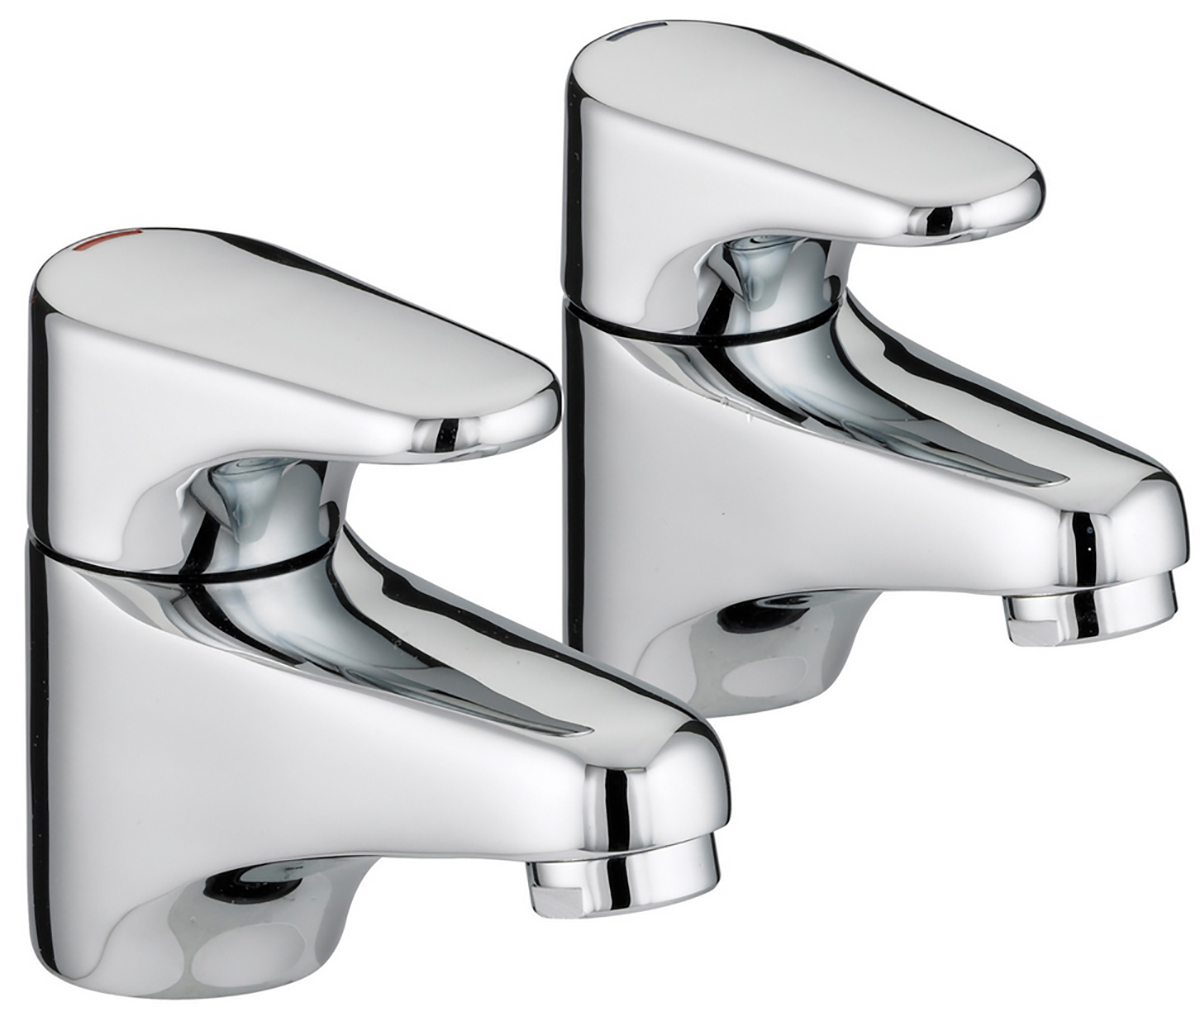 Basin Taps - 4 Litre Flow Limit